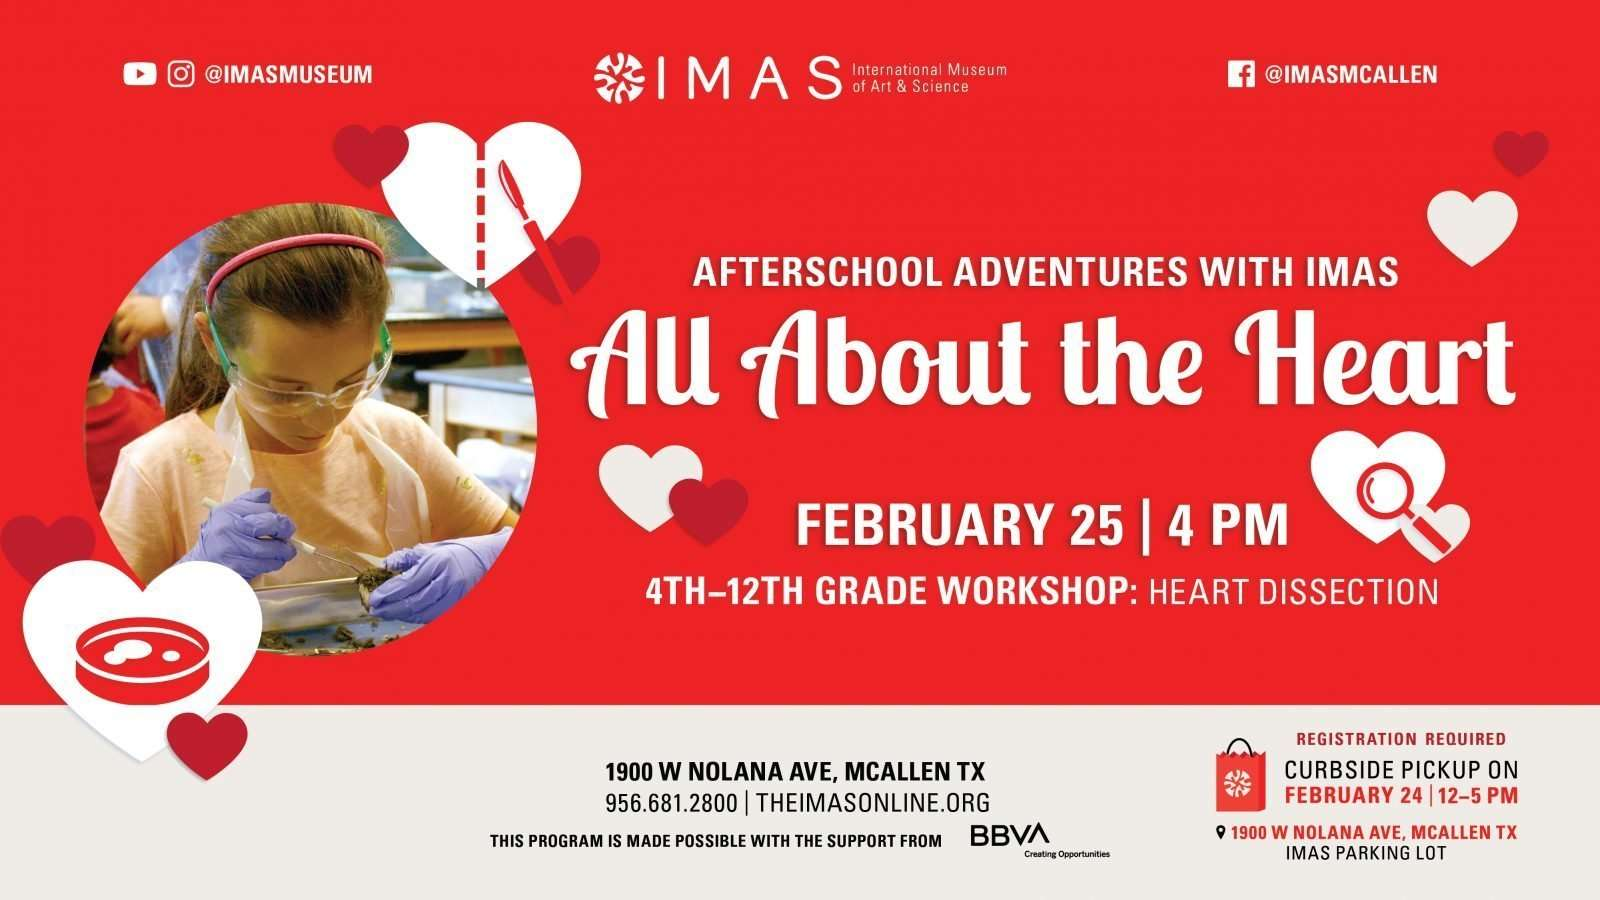 All About the Heart FB event 4th 12th